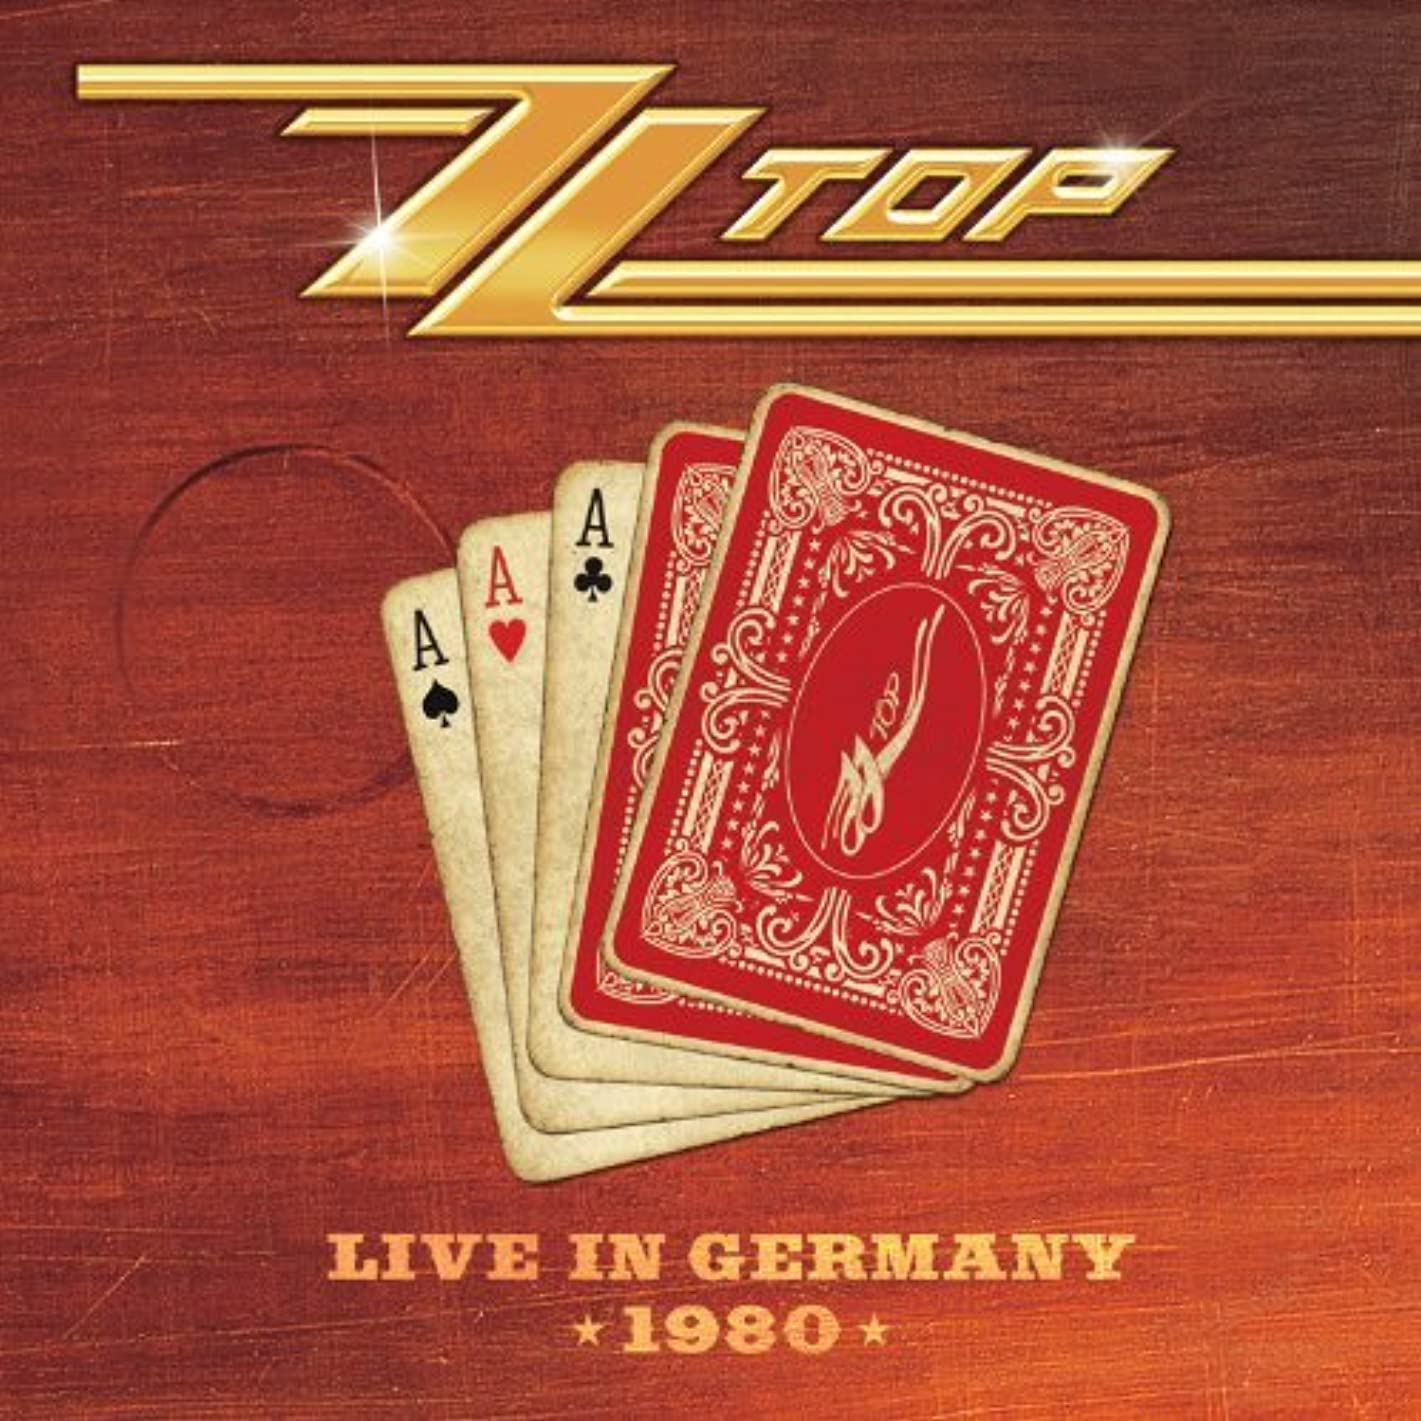 Live In Germany 1980 by ZZ Top (2011-06-21)